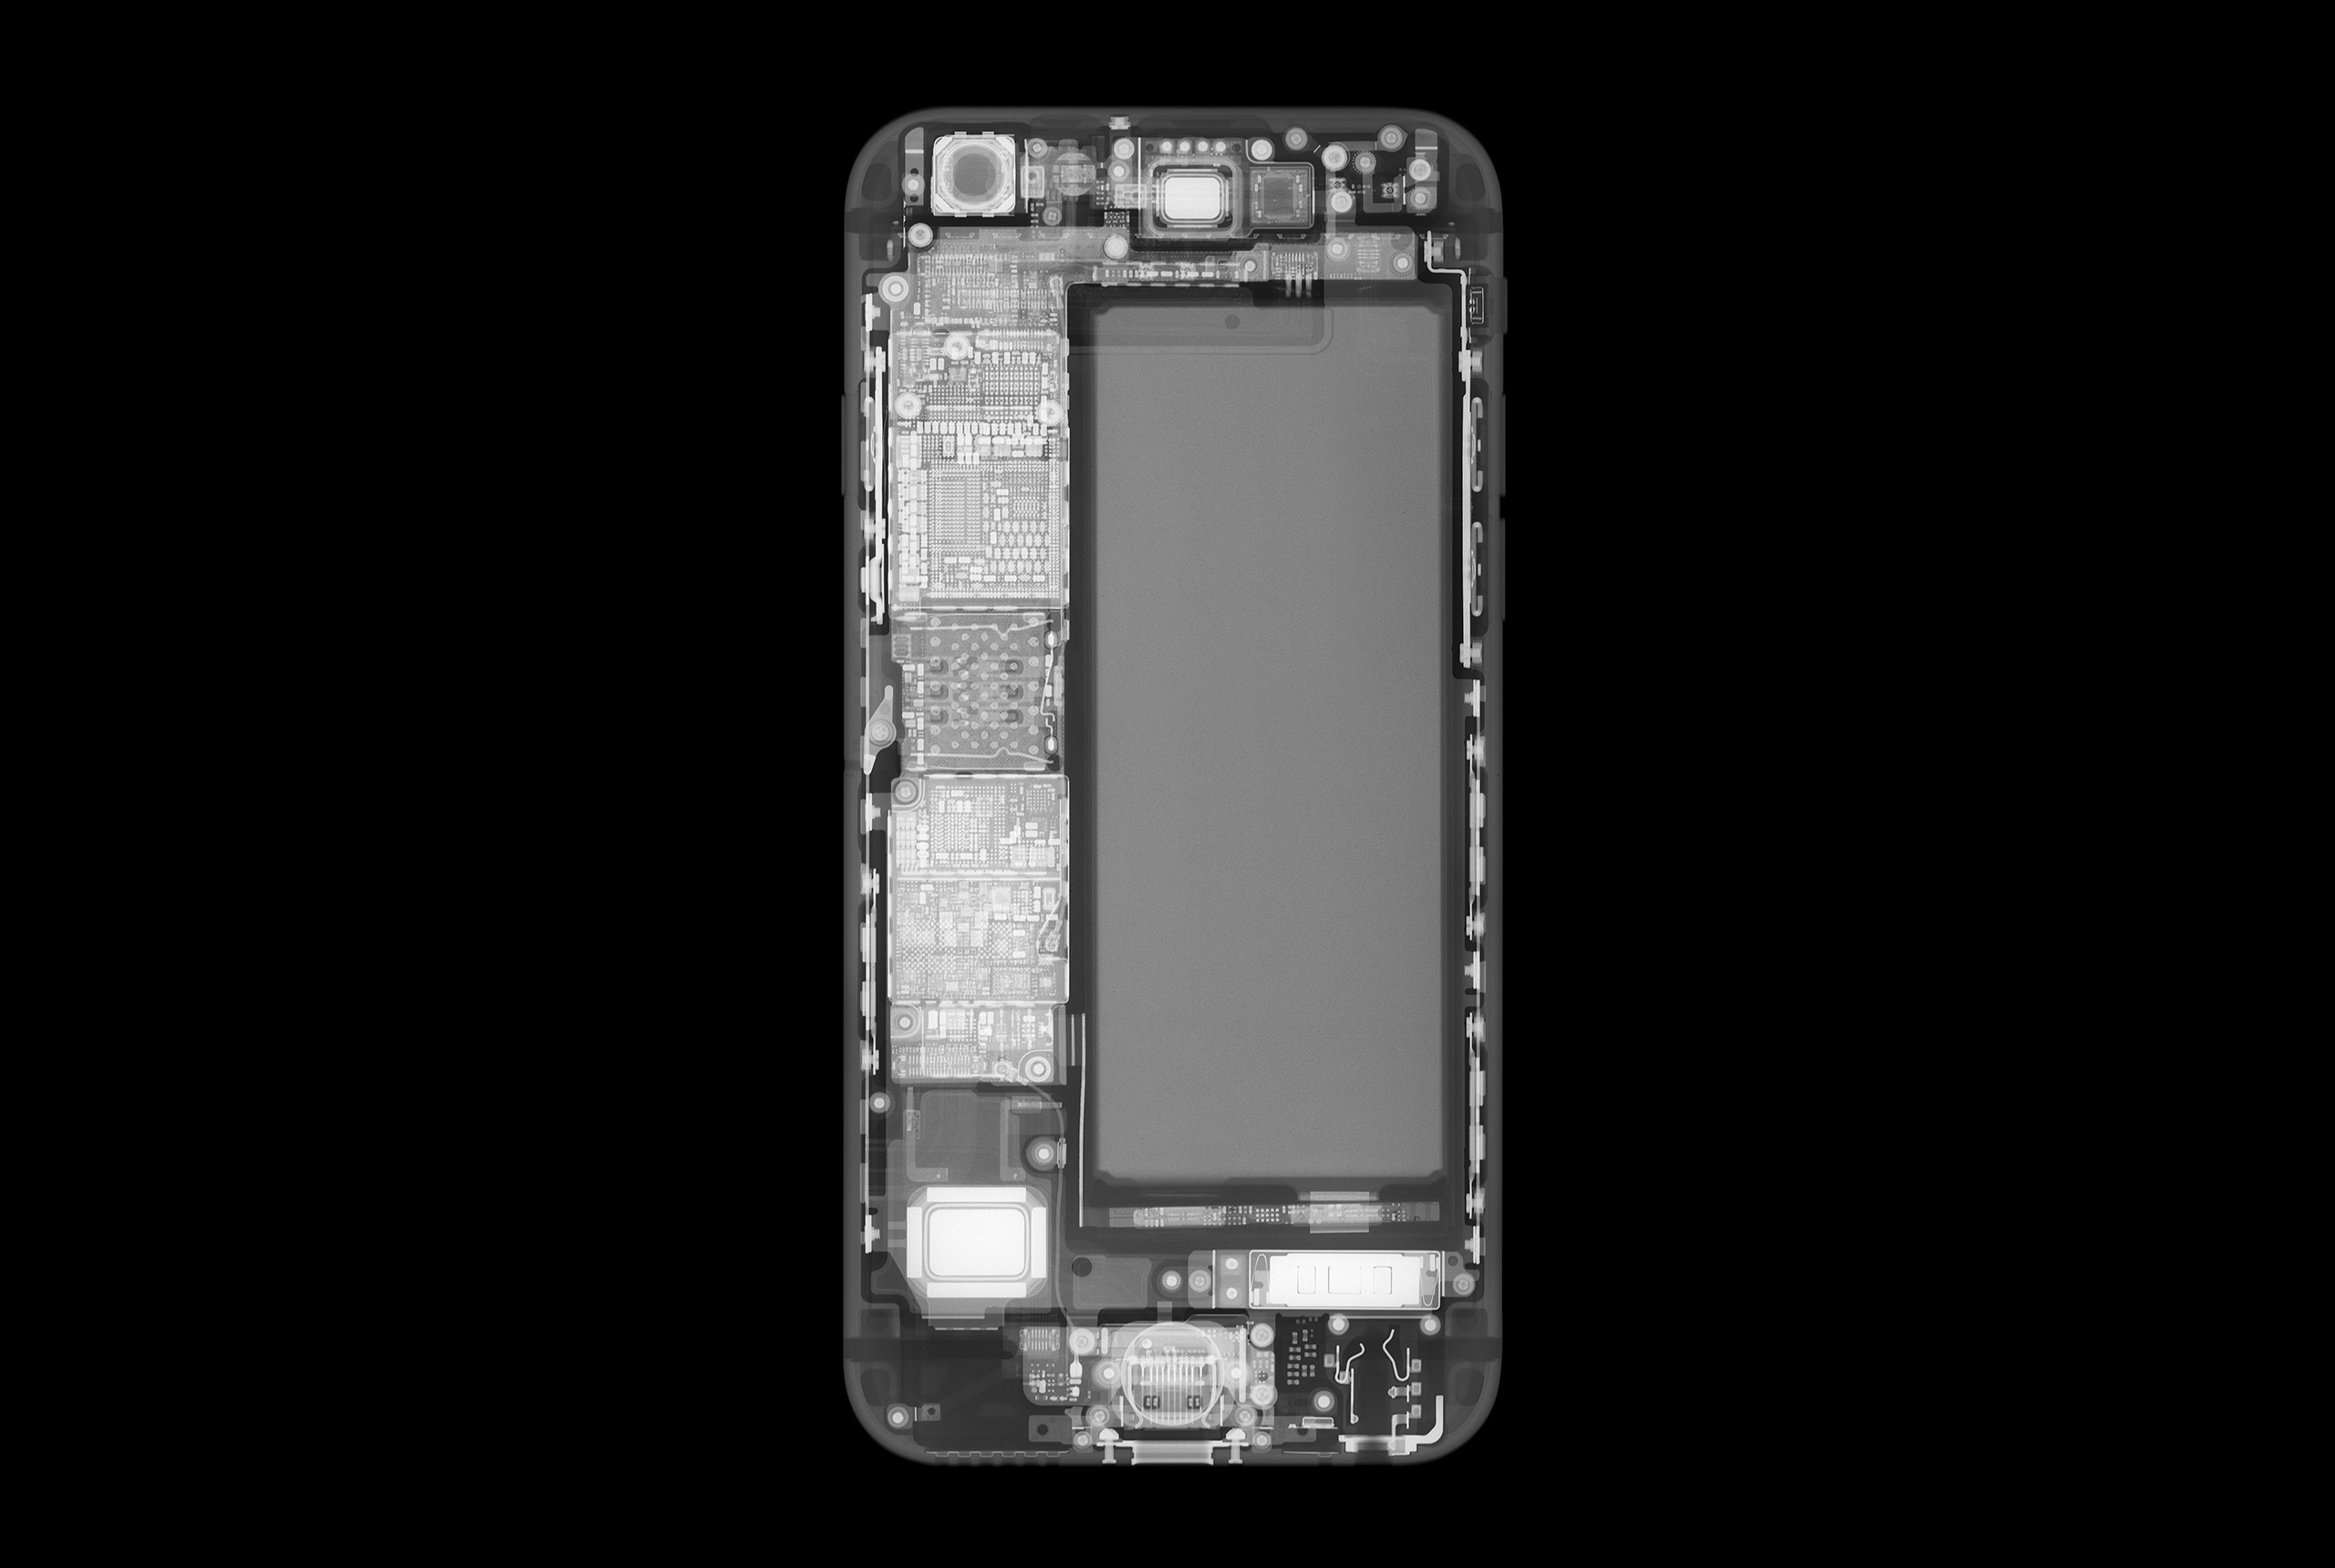 An X-ray image of a smartphone.